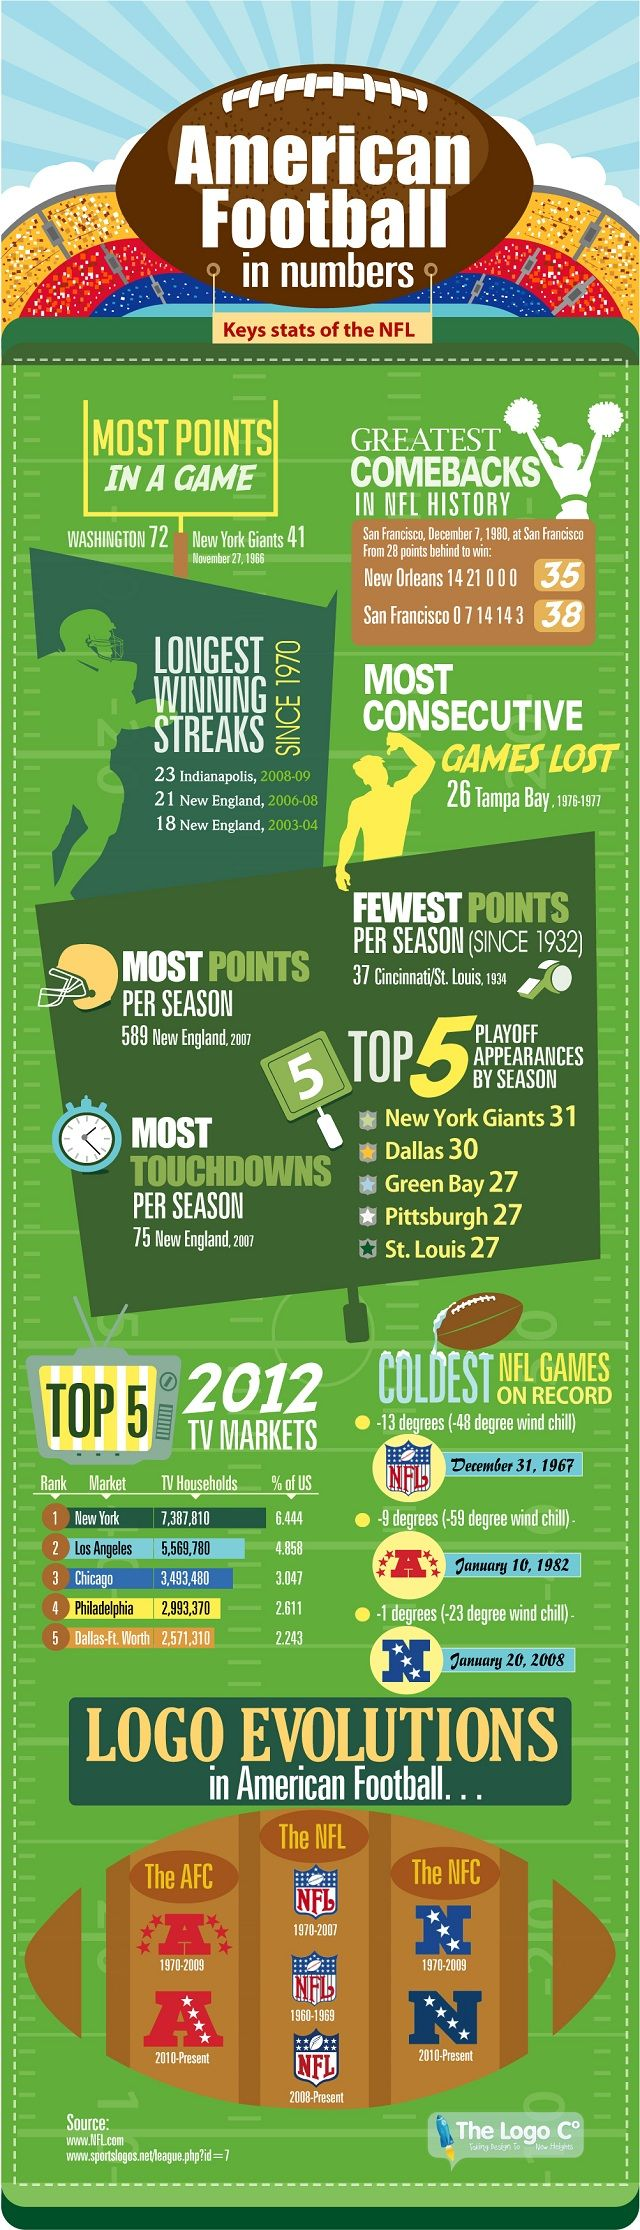 INFOGRAPHIC - NFL -  American Football Infographic with loads of cool facts and a chronicle of the evolution of the NFL logos over the years.